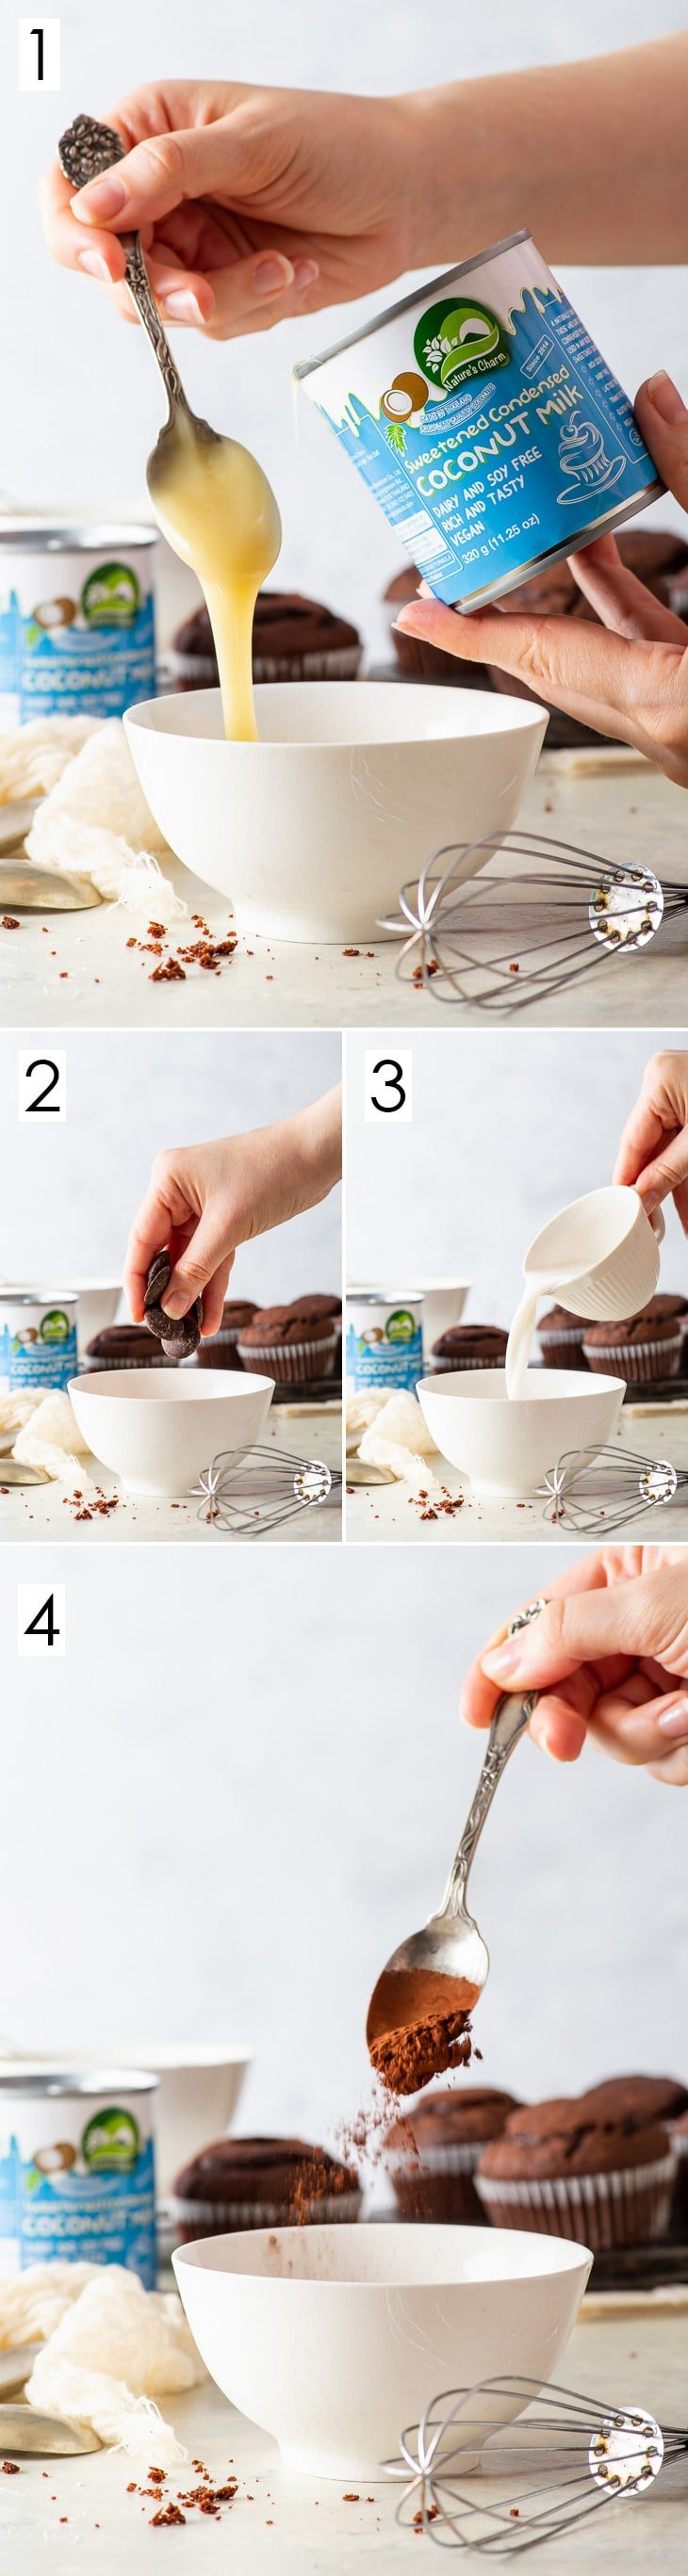 4 step process of making vegan chocolate fudge sauce.